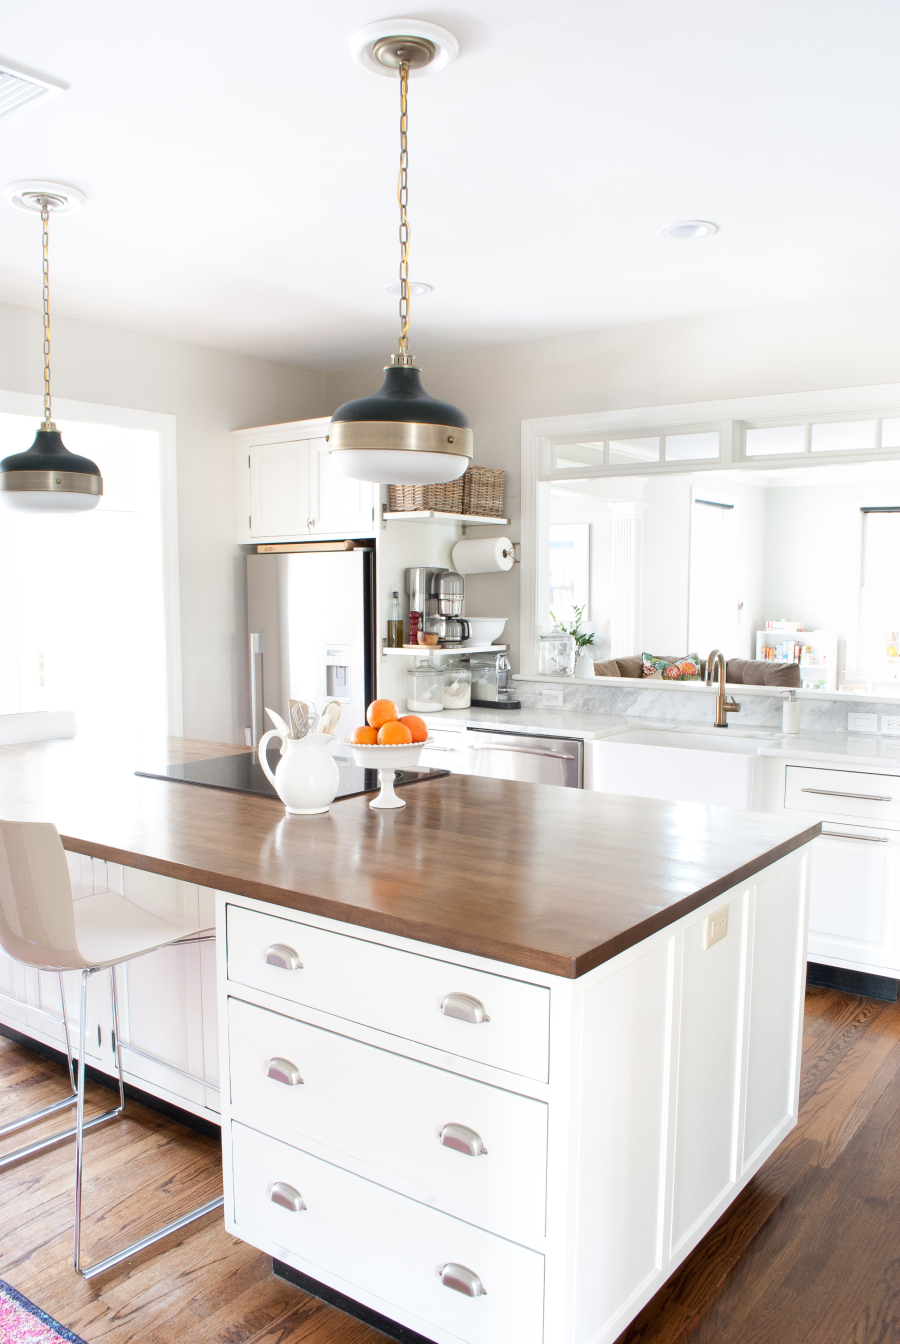 White kitchen with wood countertops